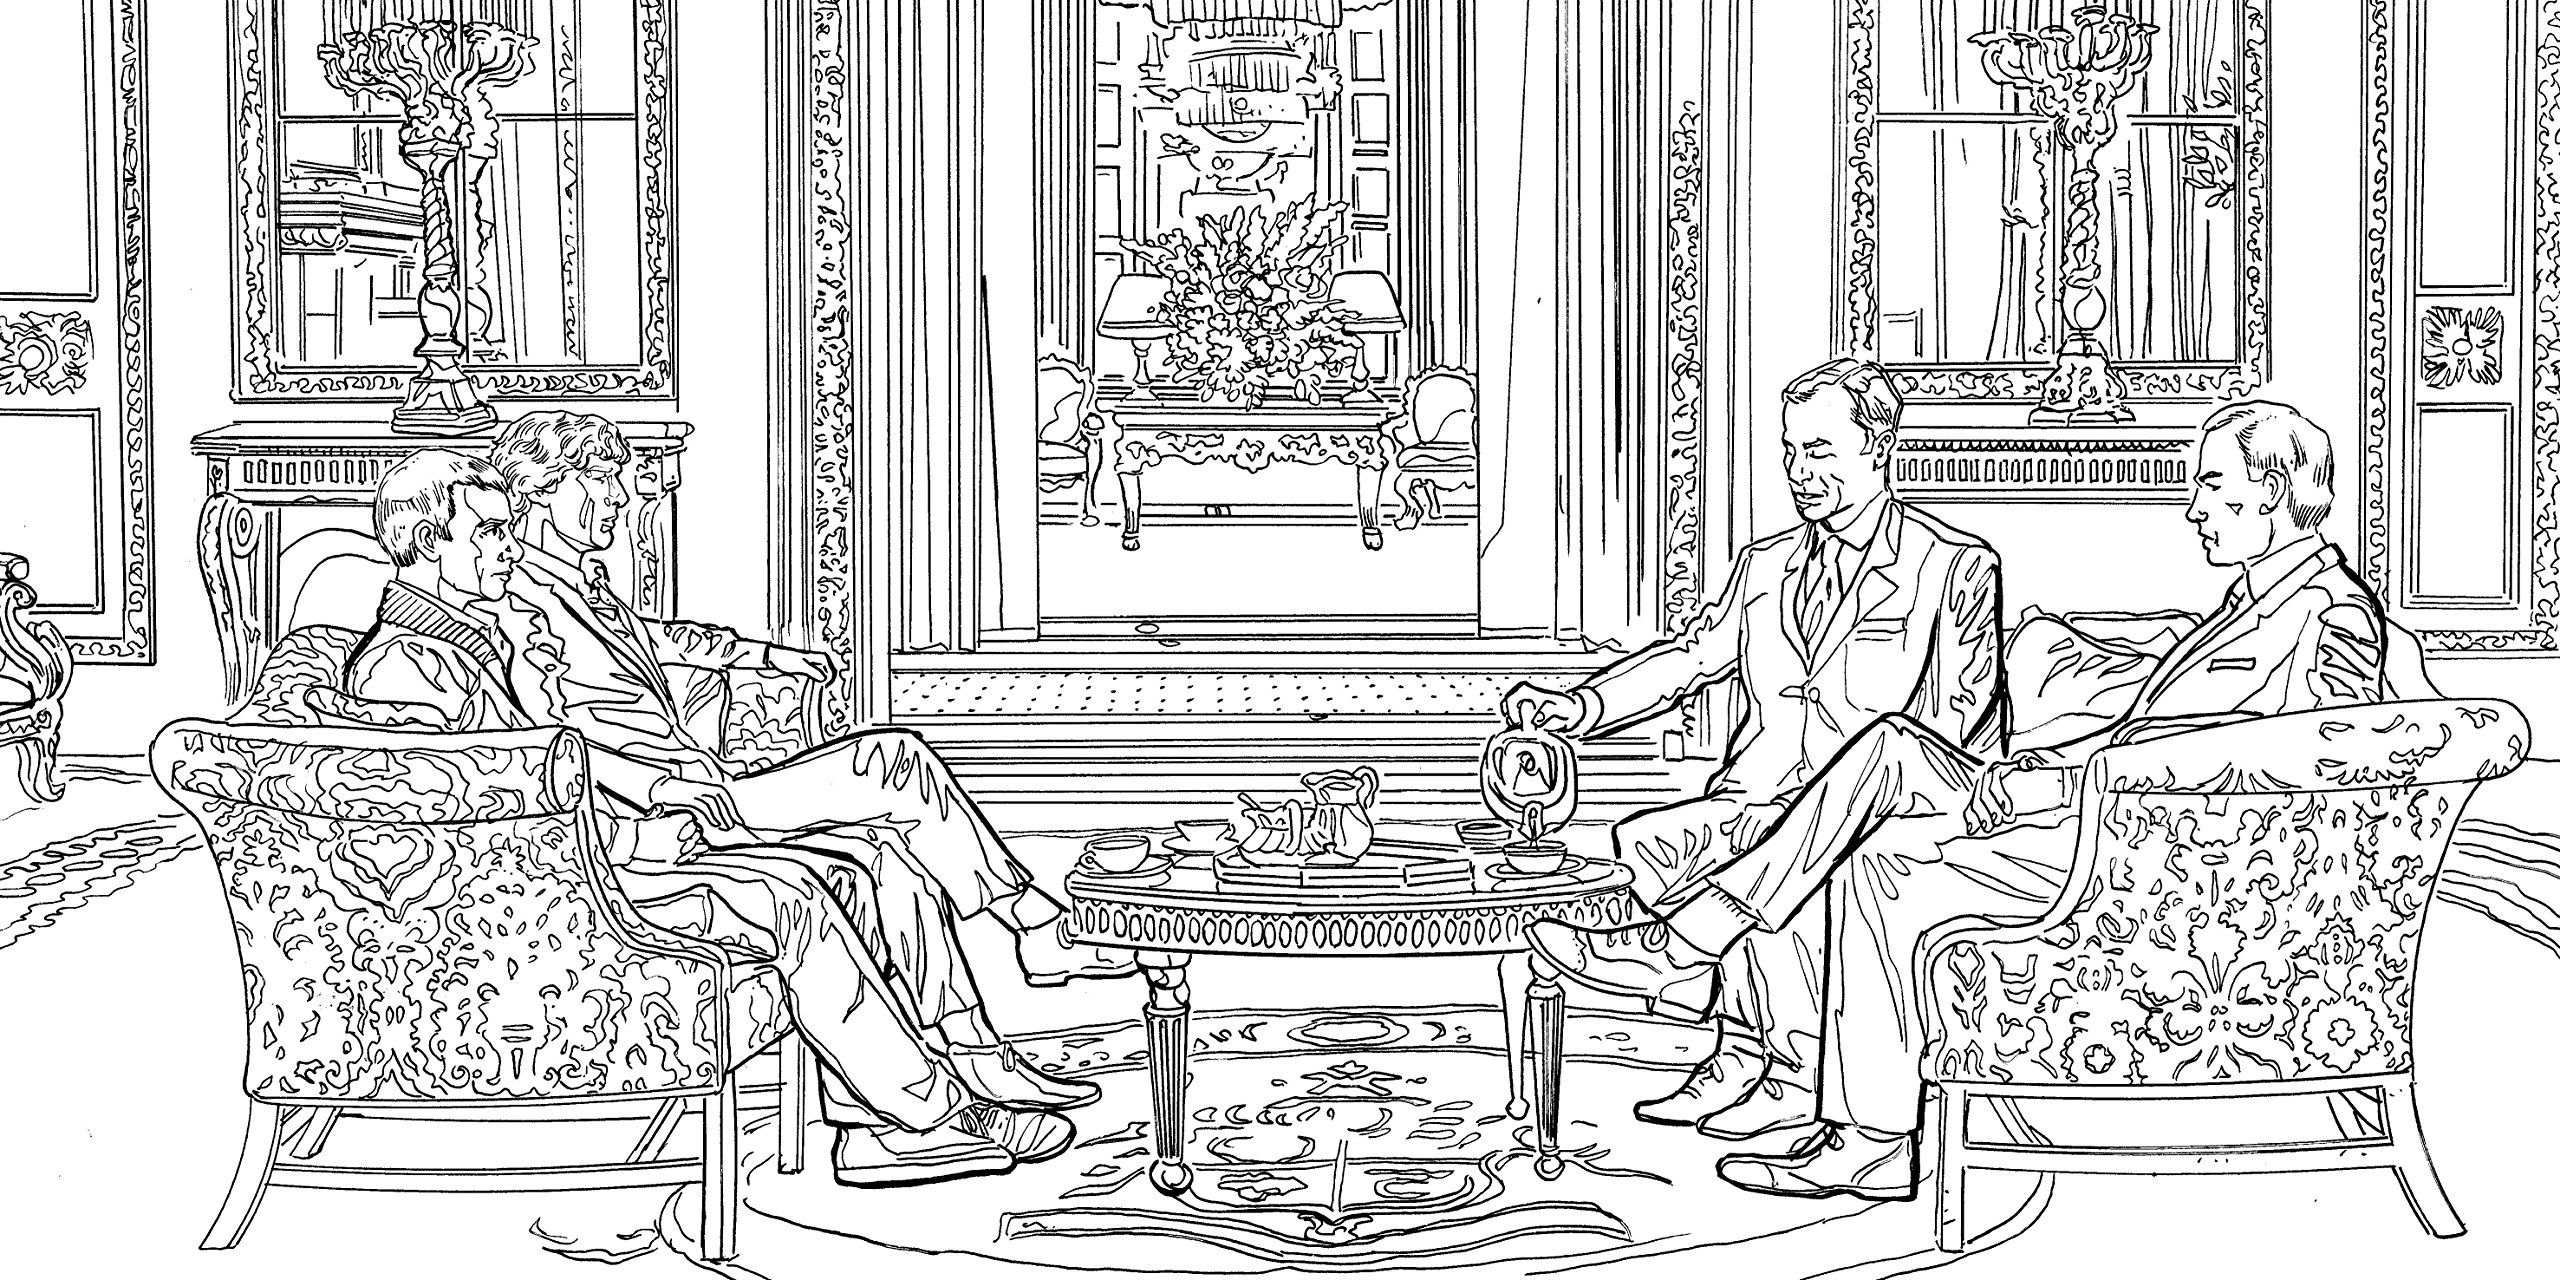 sherlock the mind palace the official colouring book amazoncouk - Amazon Coloring Book